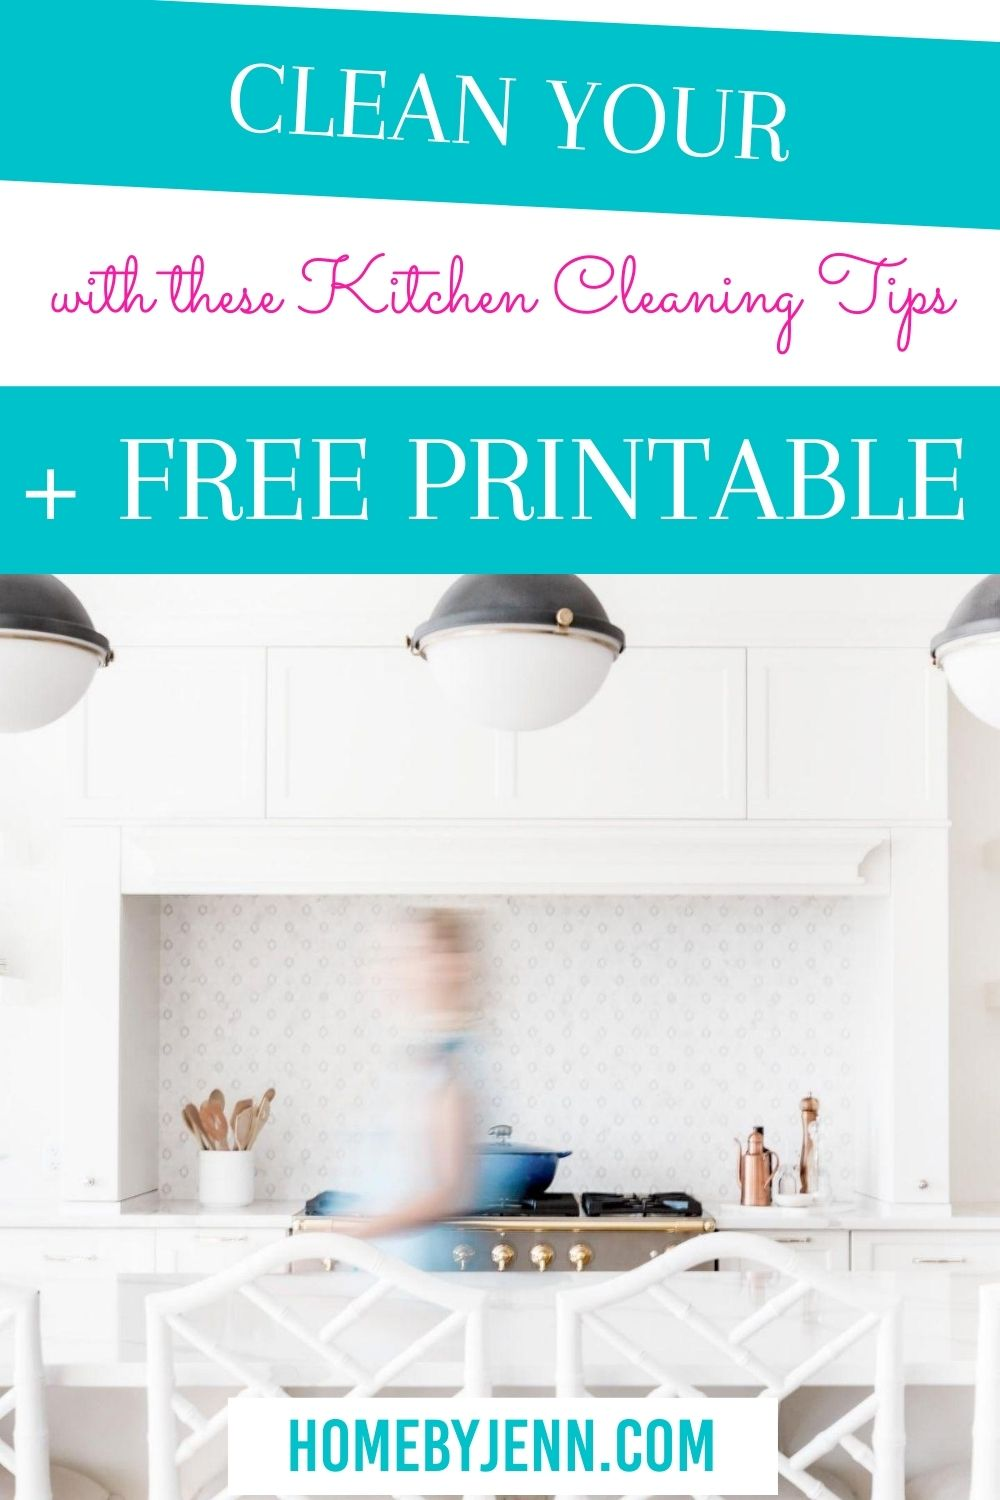 How to clean a kitchen so you can keep your kitchen clean. Know what to clean when in your kitchen by using the kitchen cleaning checklist and cleaning tips. | #cleaning #tips #hacks #kitchen #howto #deepclean #checklist via @homebyjenn